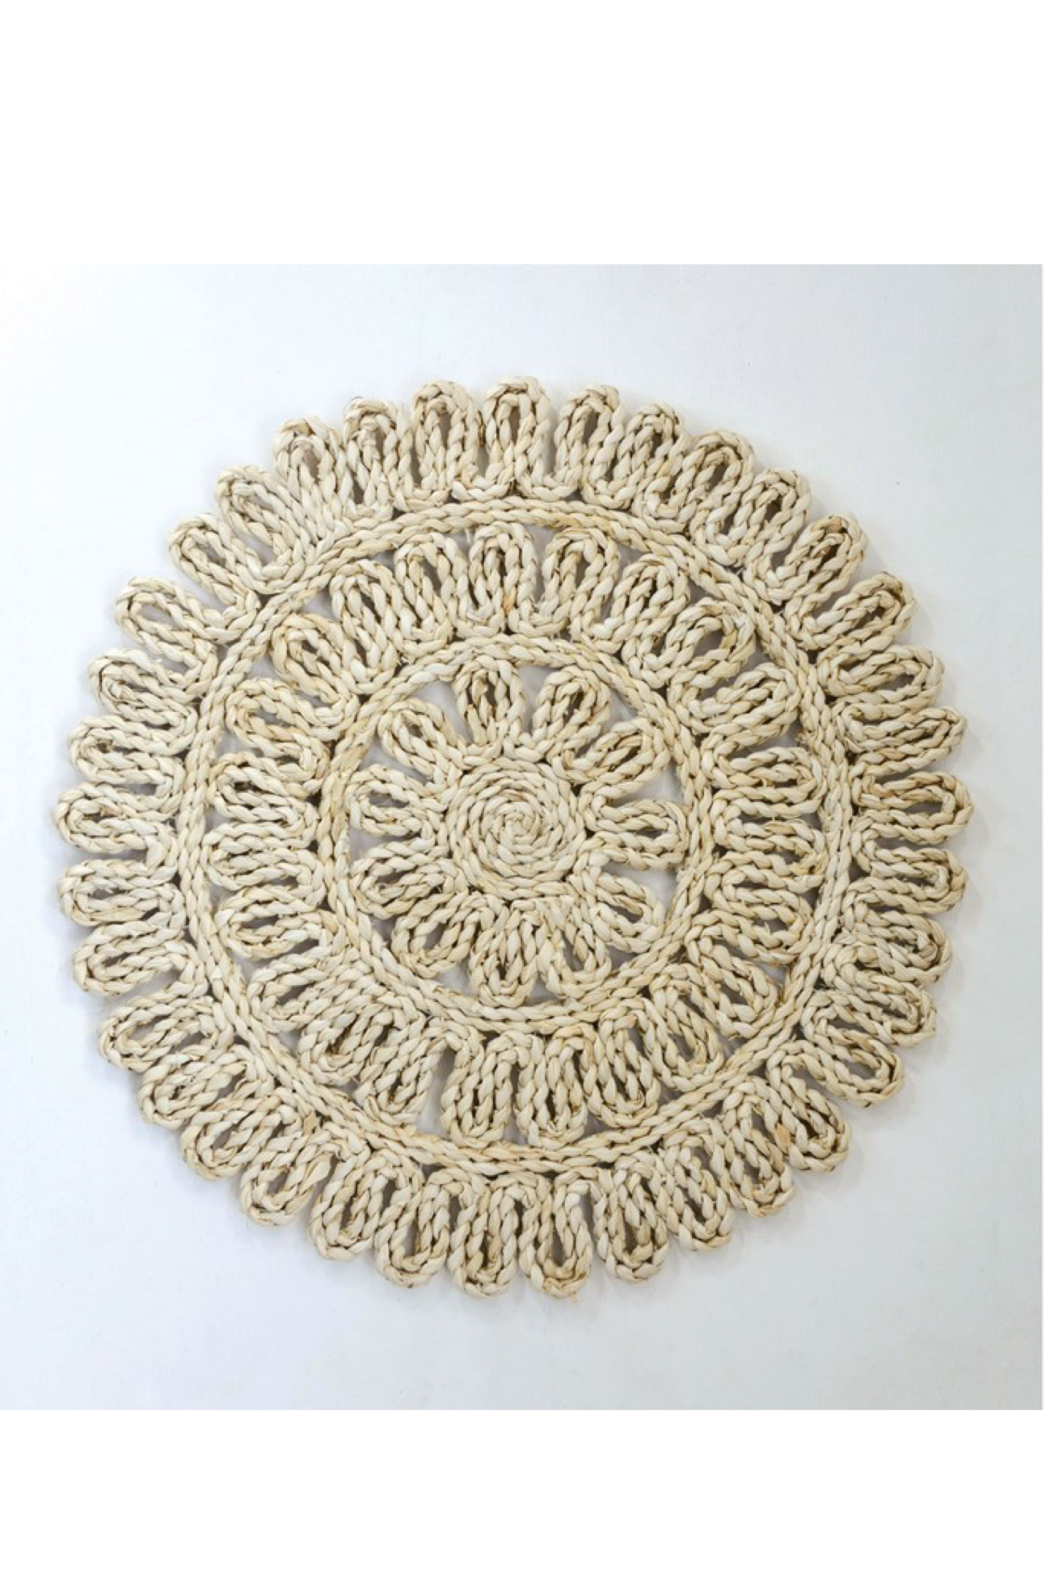 Creative Co-Op Woven Straw Placemat 15in Round In Natural - Front Full Image